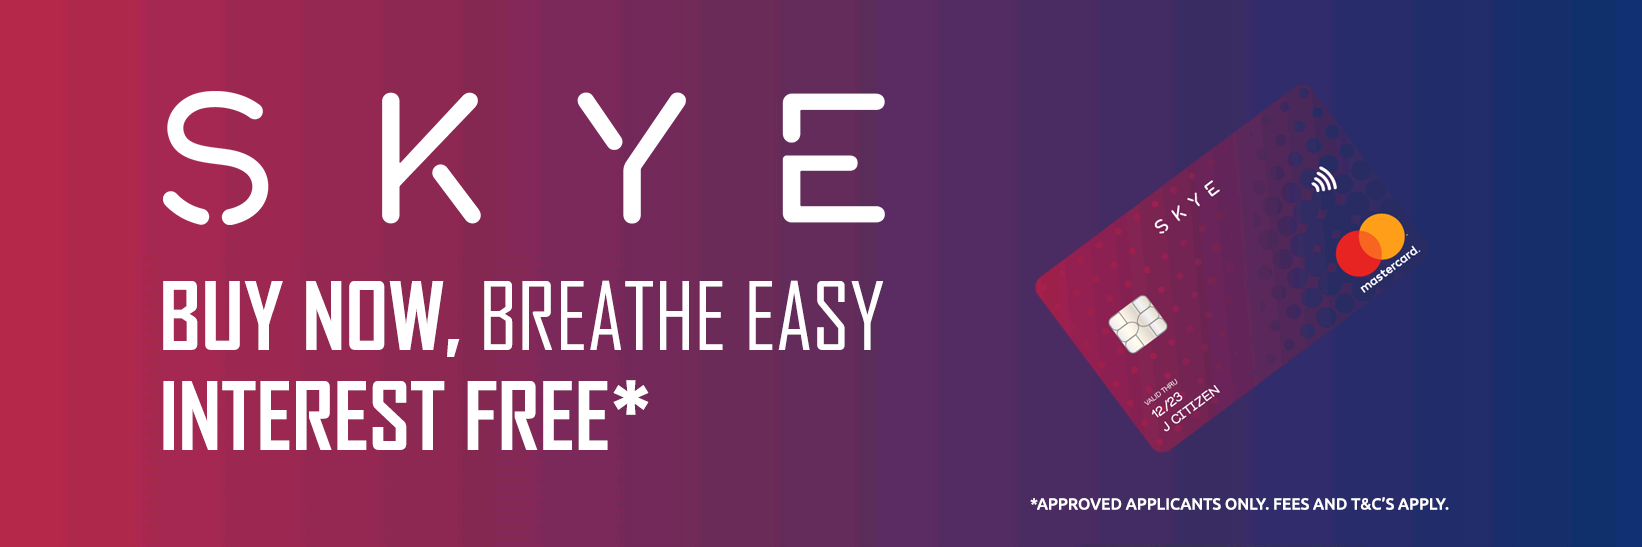 SKYE Breathe Easy Interest Free